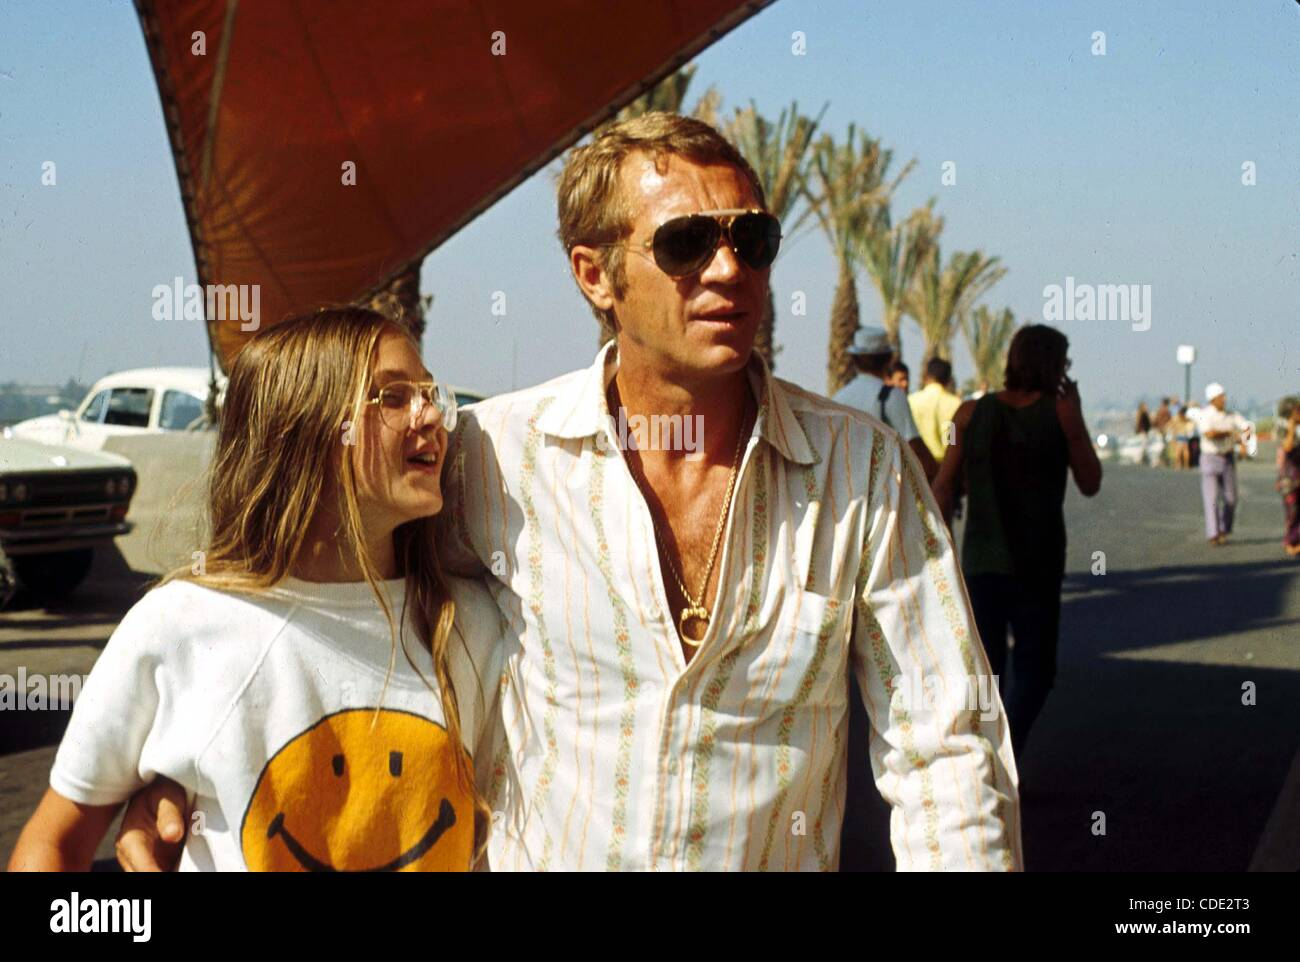 Death Of Steve Mcqueen S Daughter Pictures to Pin on ... Ali Macgraw And Steve Mcqueen